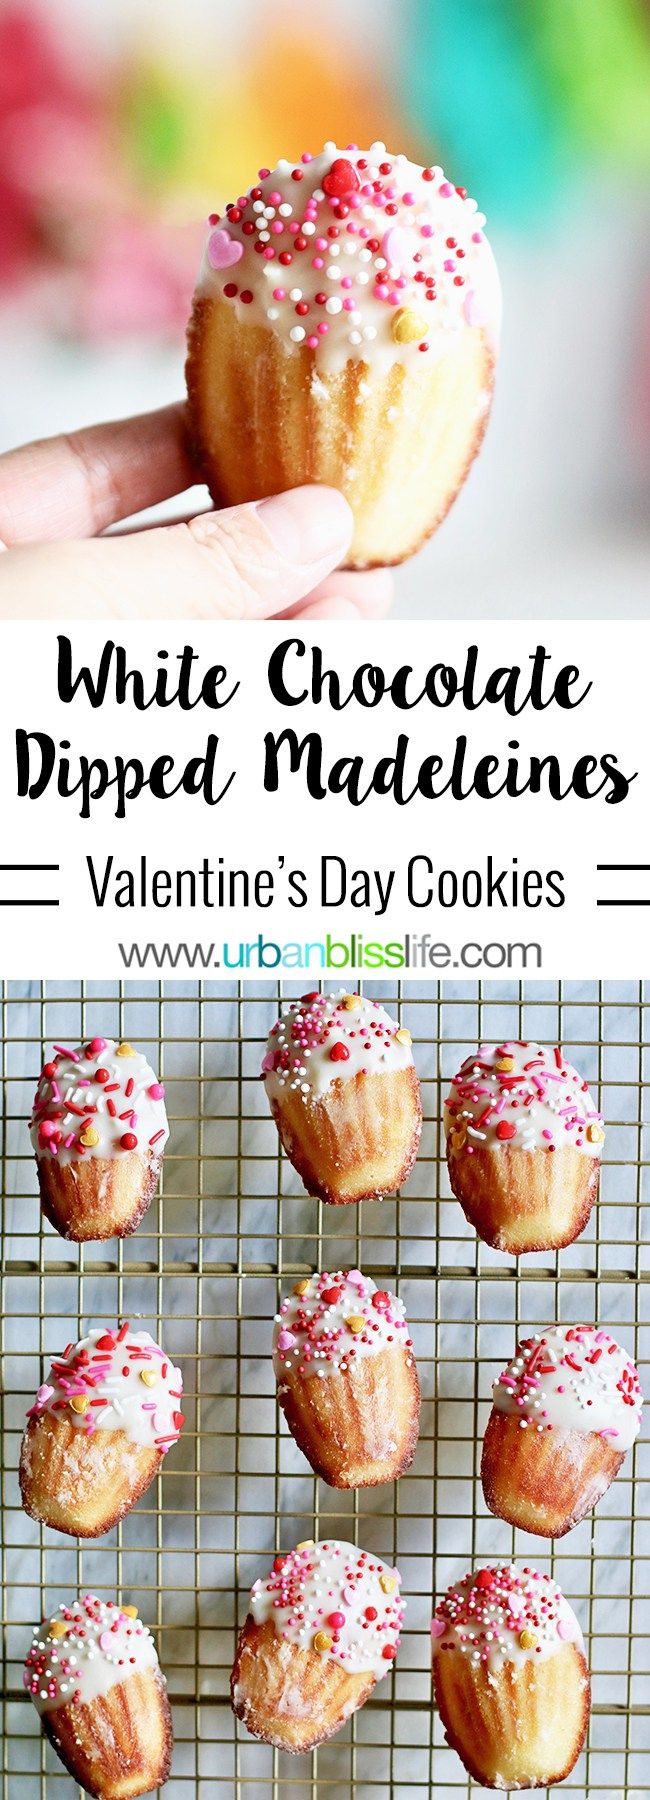 White Chocolate Dipped Valentine Madeleine Cookies are soft, pillowy tea cakes with slightly crisp edges, decorated and perfect for Valentine's Day! Get the recipe on UrbanBlissLife.com #madeleines #cookies #teacakes #dessert #foodblog #foodblogger #chocolate